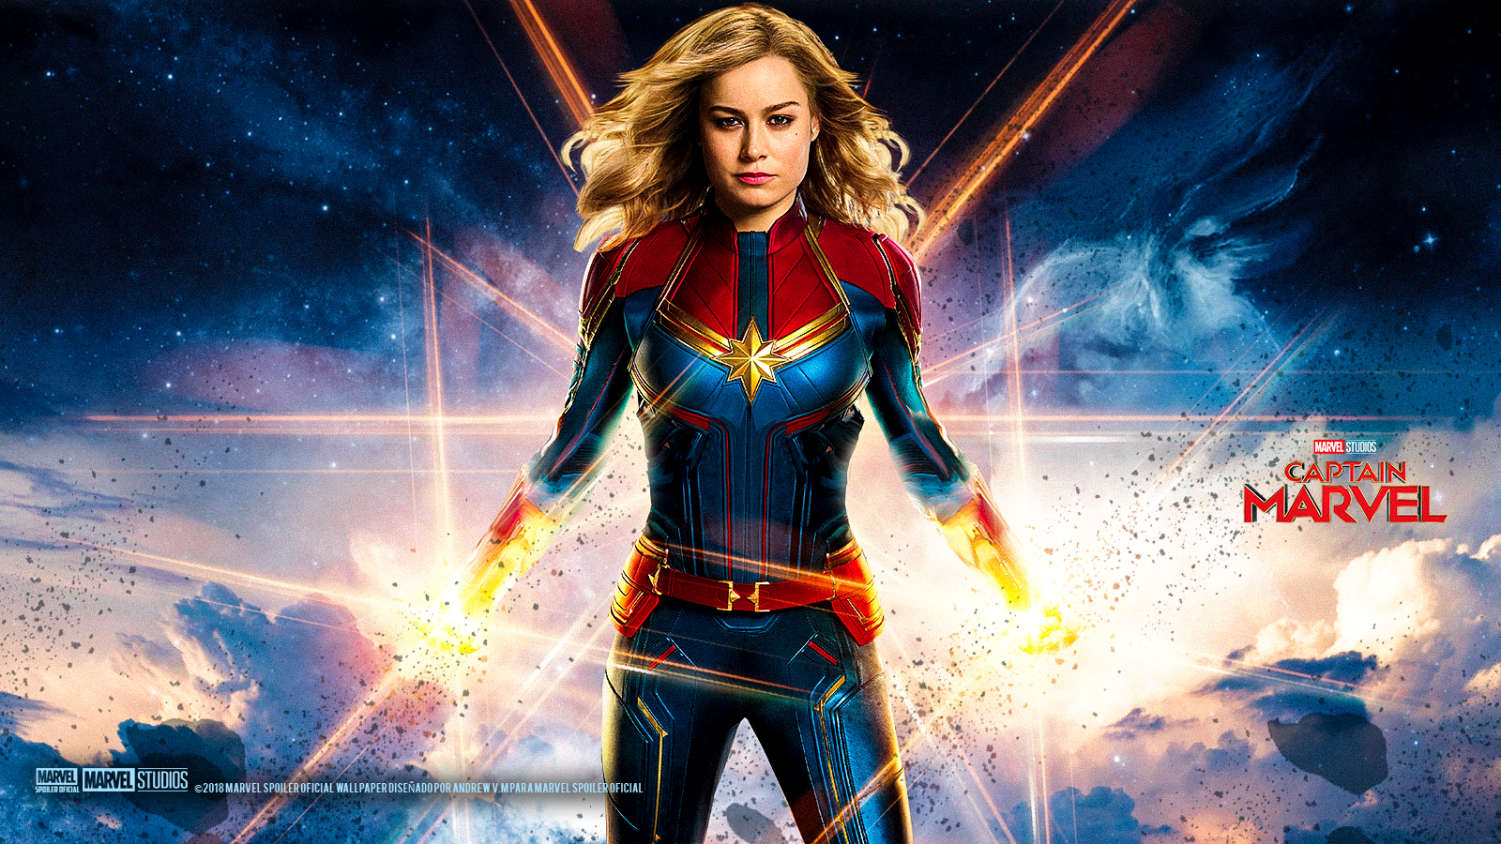 Larson's depiciton of Danvers provides a positive to the otherwise bland film.